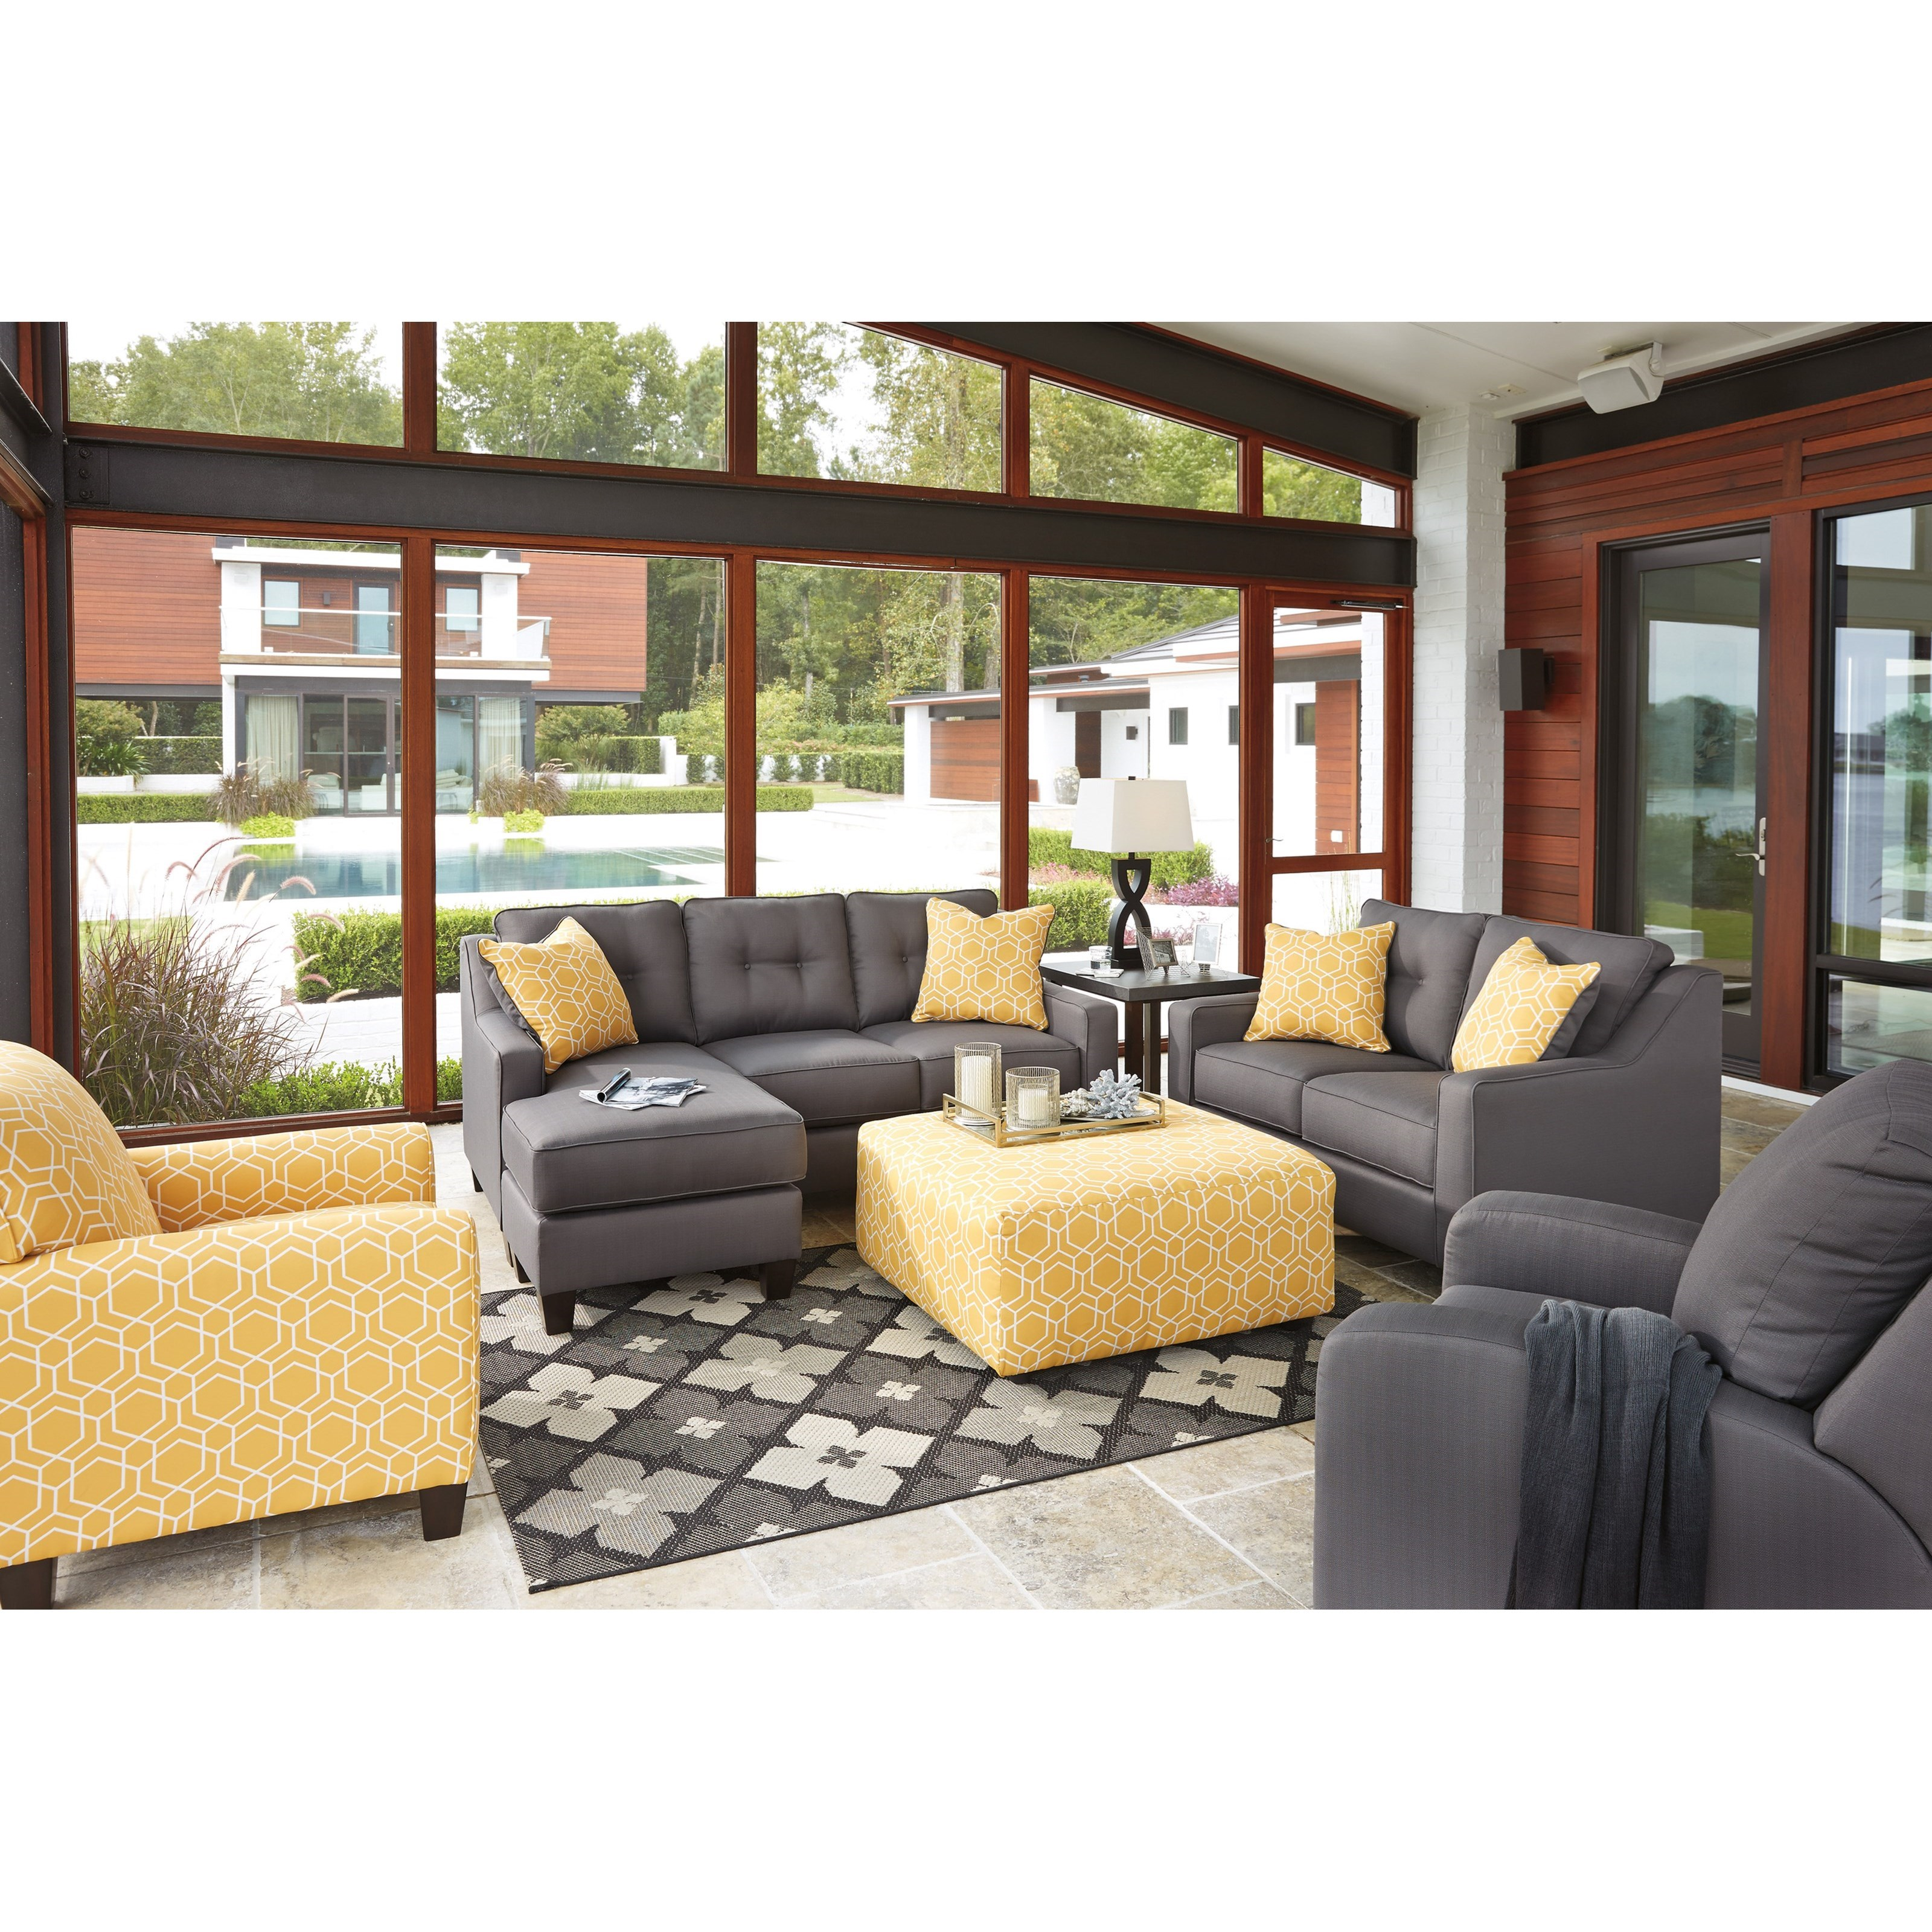 Living room group del sol furniture stationary living room groups